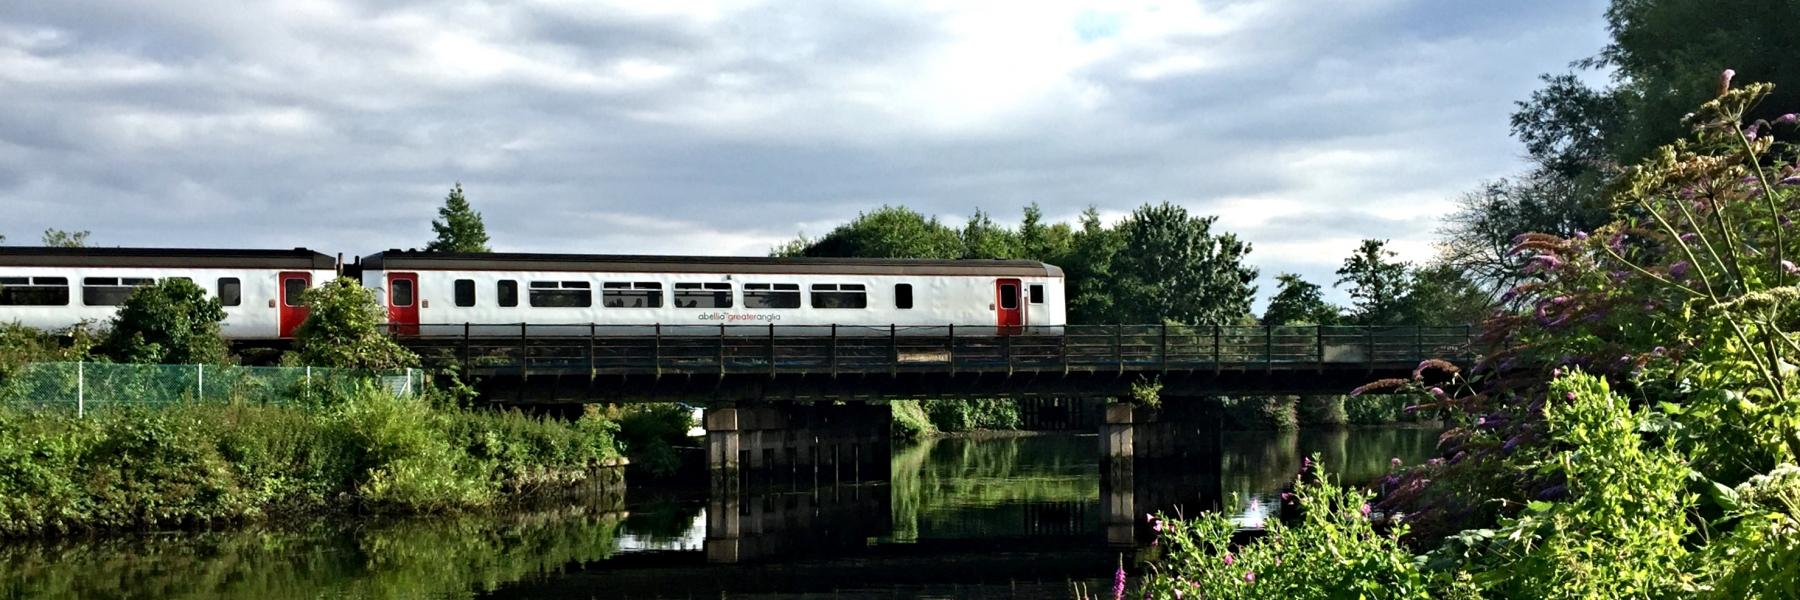 Train crossing the New Cut near Norwich along the Wherry Lines.